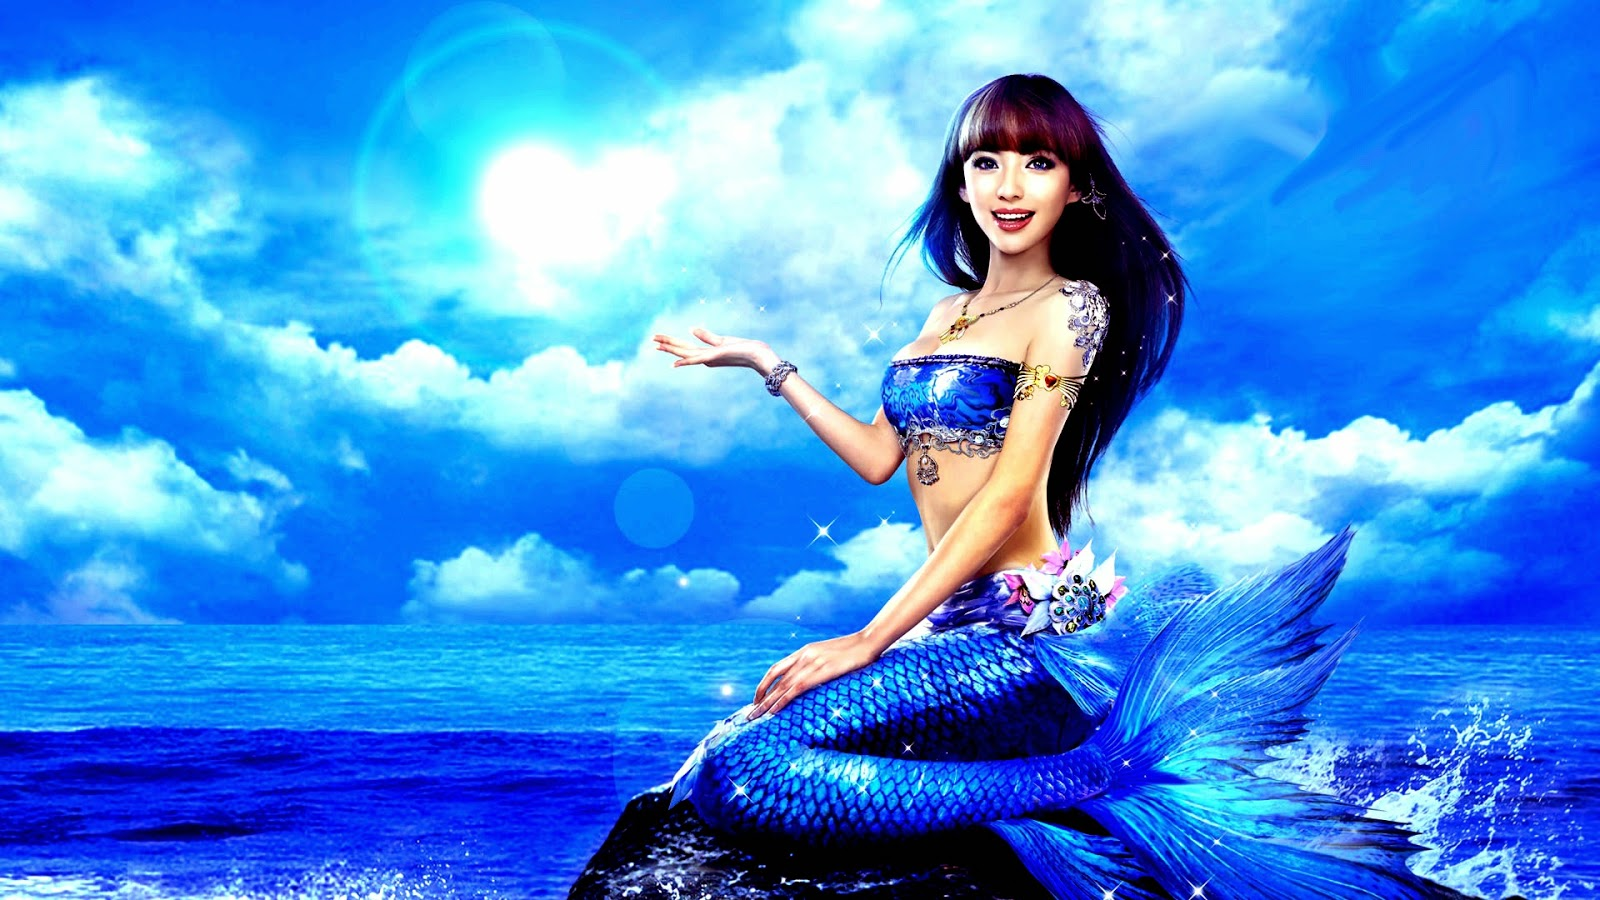 mermaid-sitting-on-rock-theme-photoshop-image-graphicsedit-picture.jpg